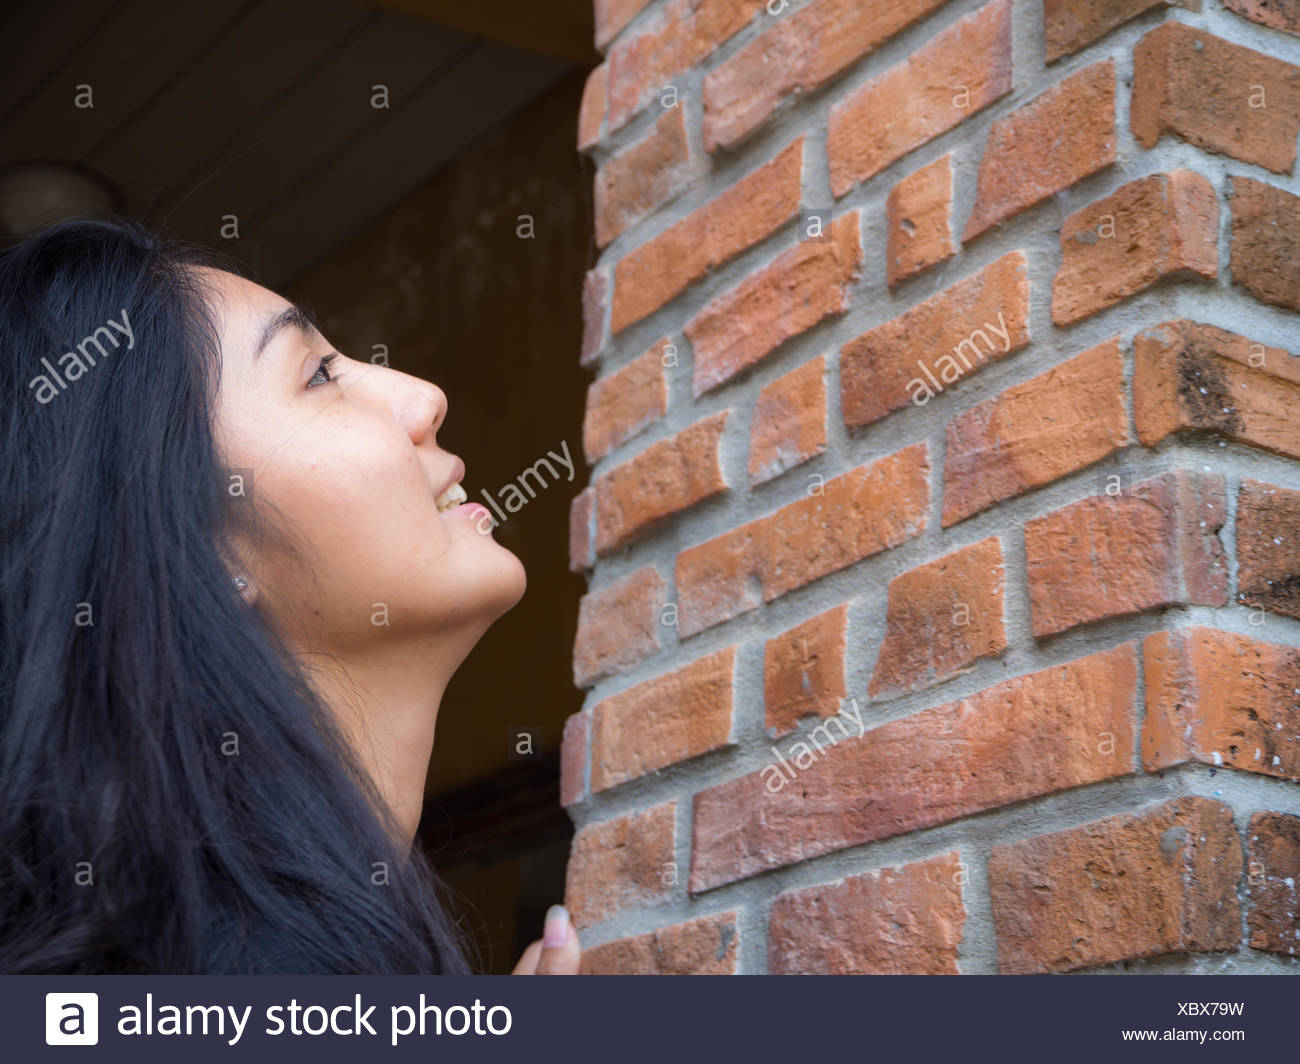 Asian woman looking at the brick wall - Stock Image